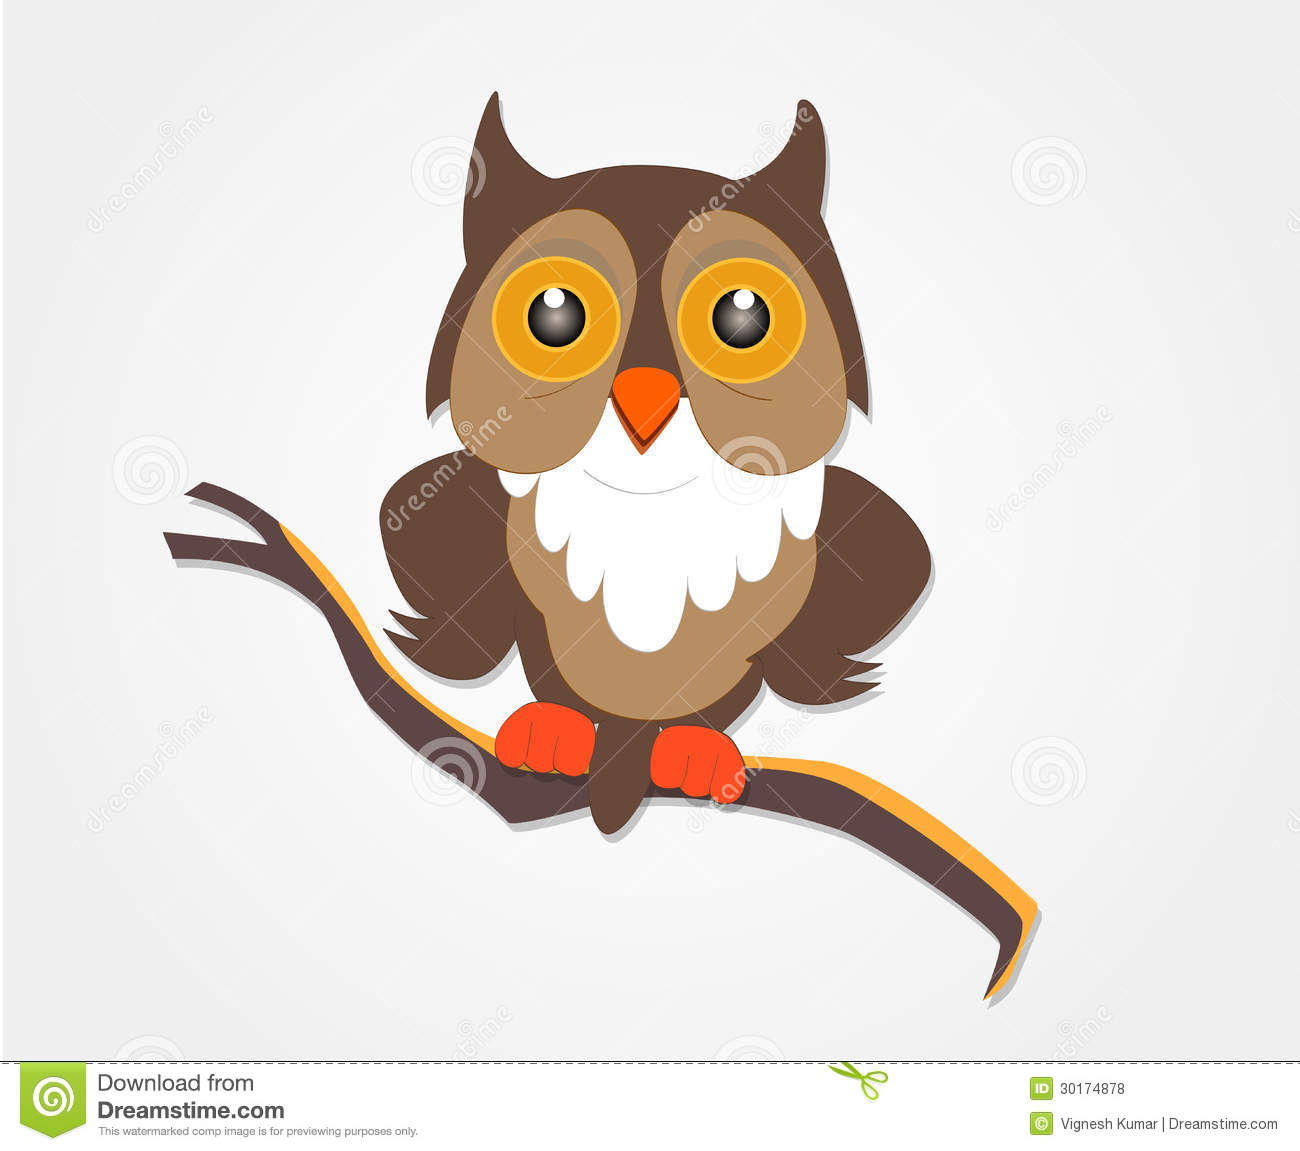 Tattoo Designs Vignesh: Owl Royalty Free Stock Photos